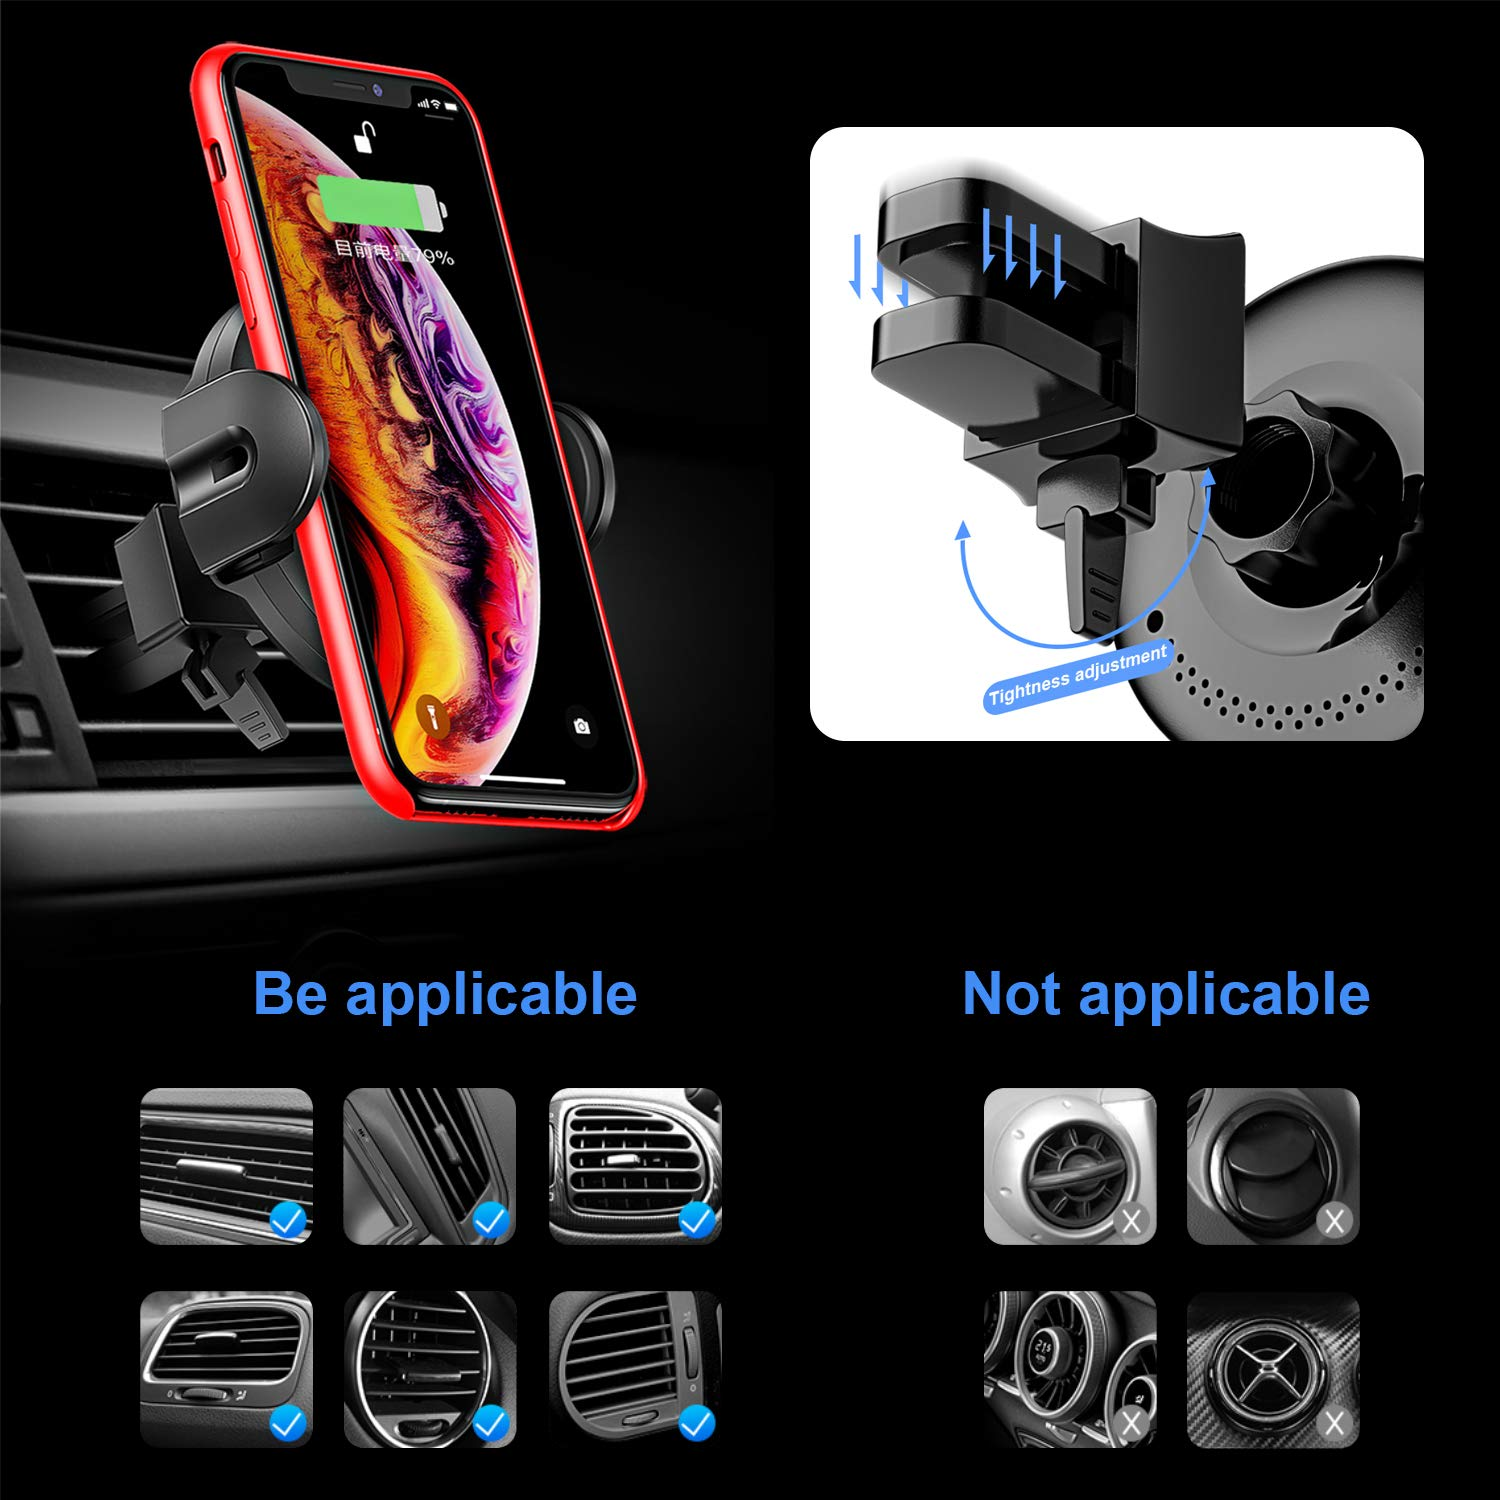 KOAKUMA Wireless Car Charger Mount, Automatic Clamping Car Mount Air Vent Phone Holder with 15W QI Fast Charging Compatible with iPhone X/XS Max/XS/XR/8/8 Plus, Samsung Galaxy S10/S10+/S9/S9+/Note 9/8 by KOAKUMA (Image #6)